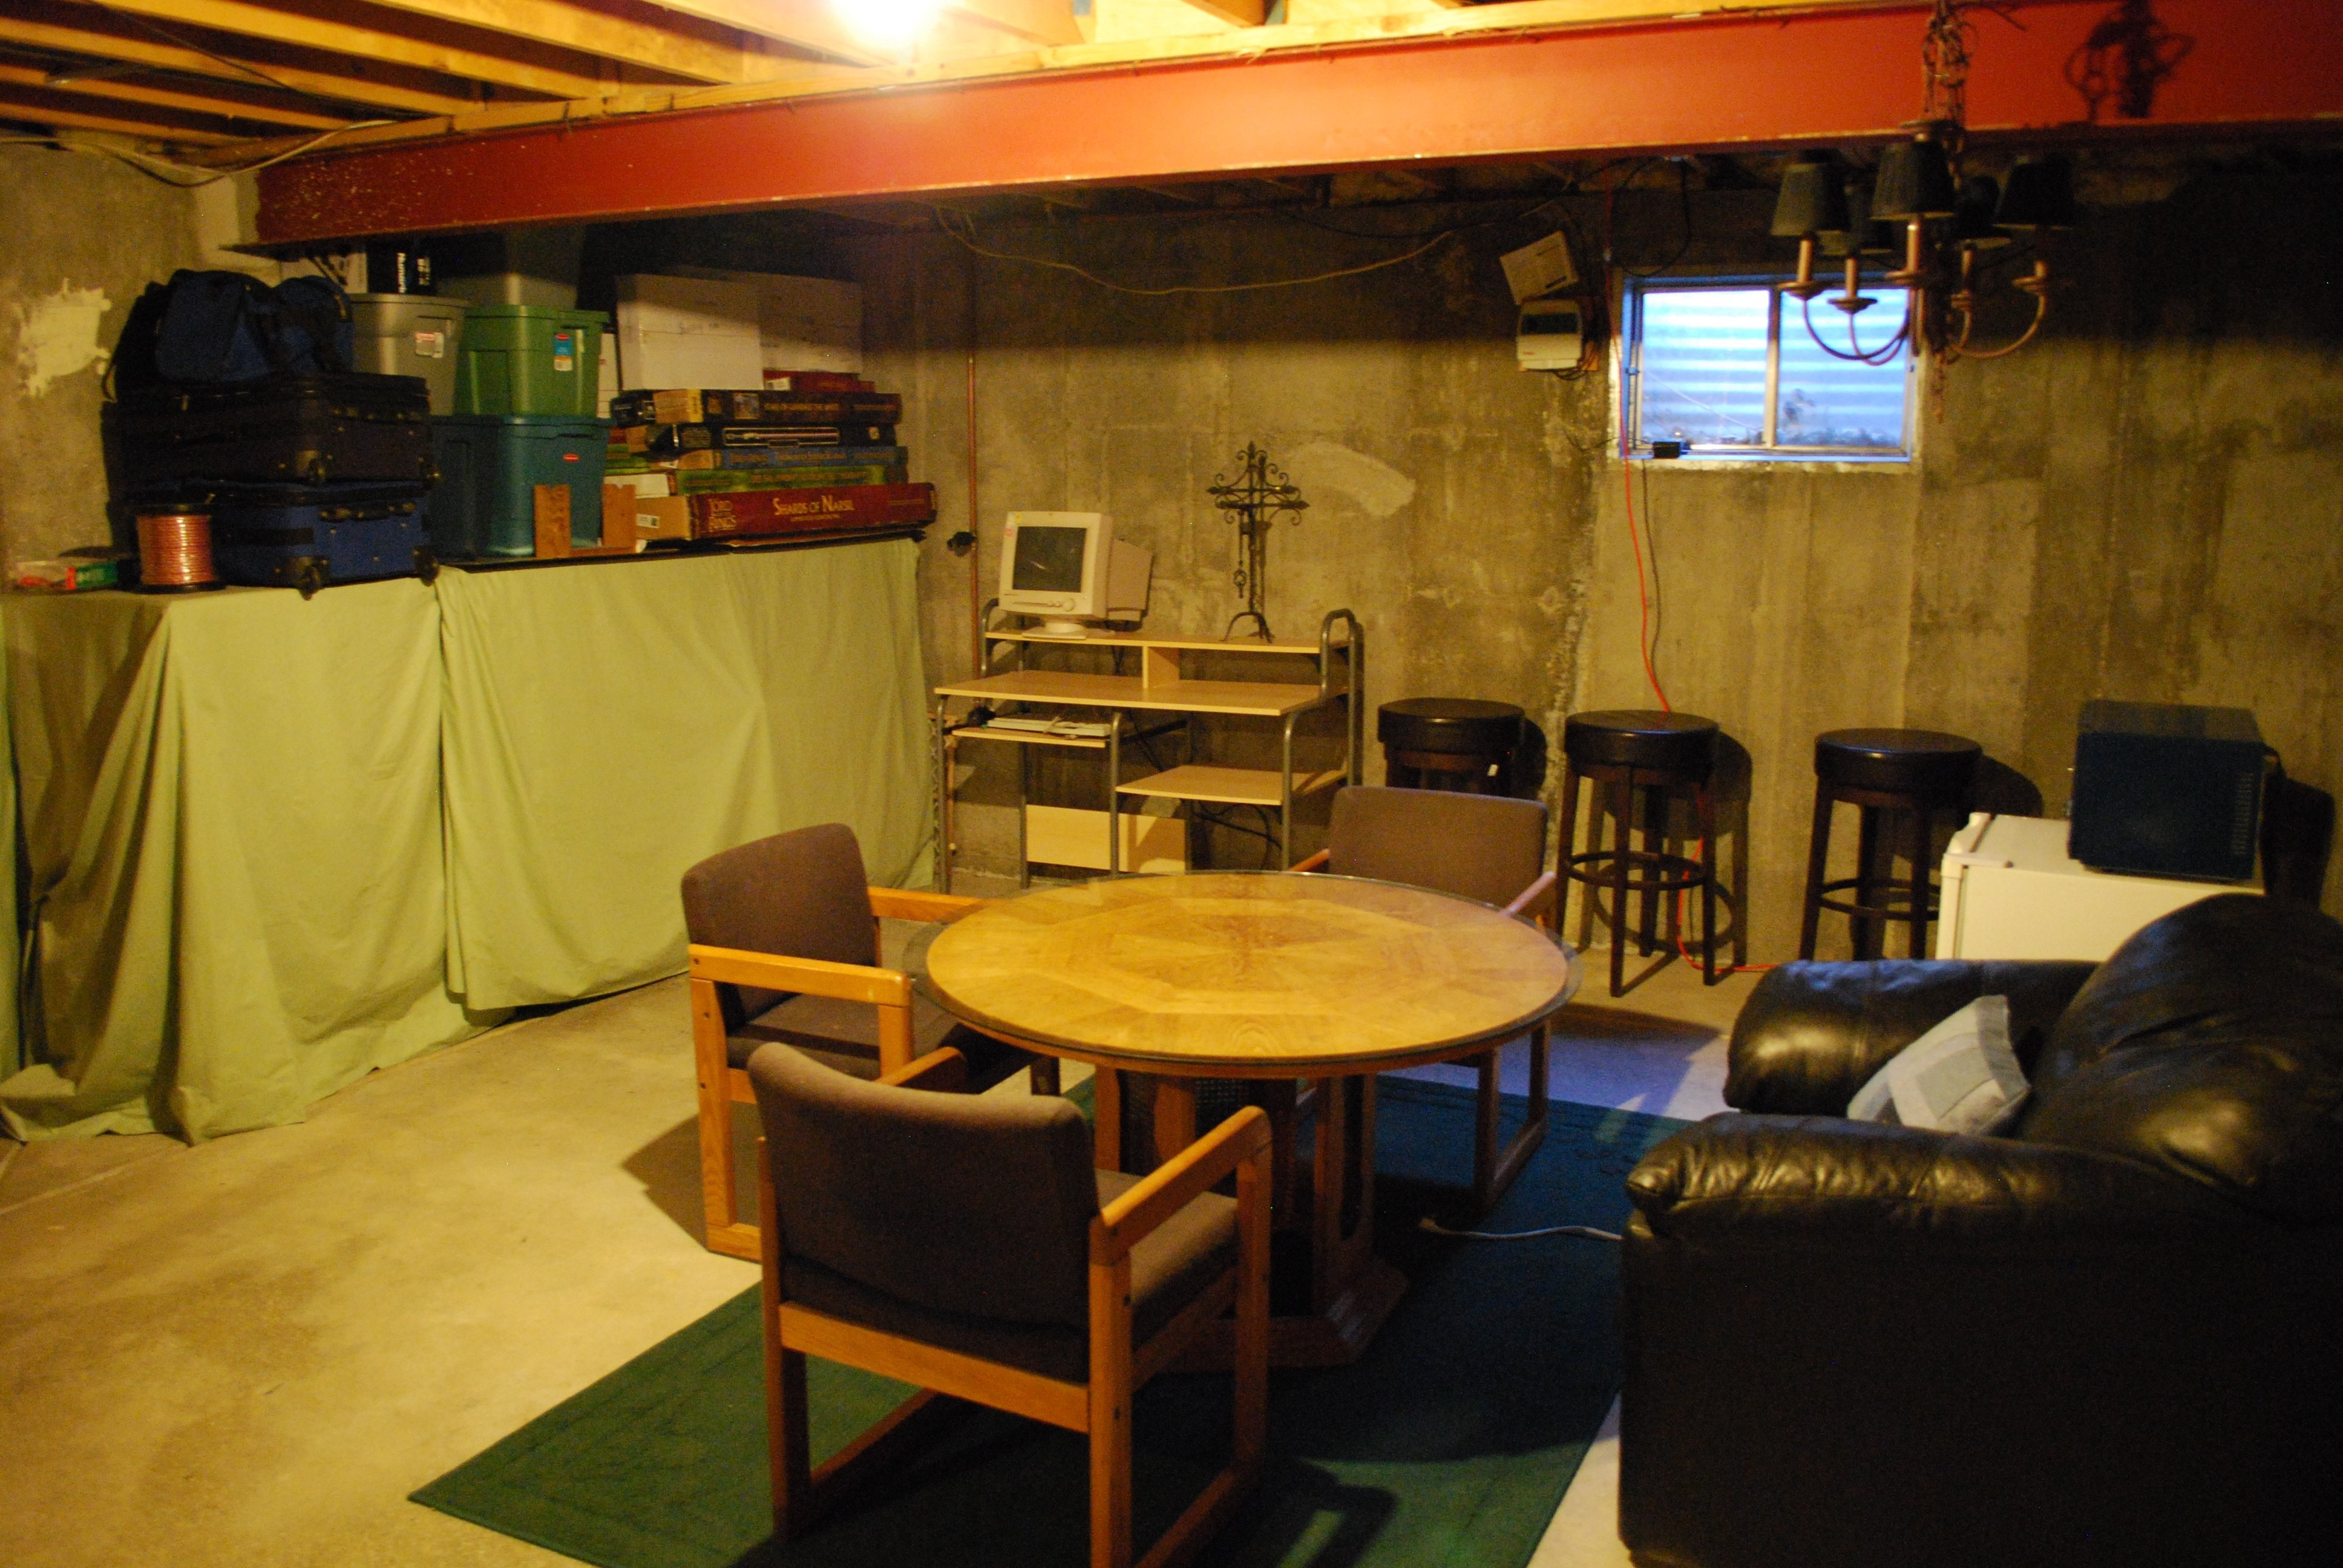 10 Amazing Man Cave Ideas For Basement diy how to make a man cave in the basement or garage furniture